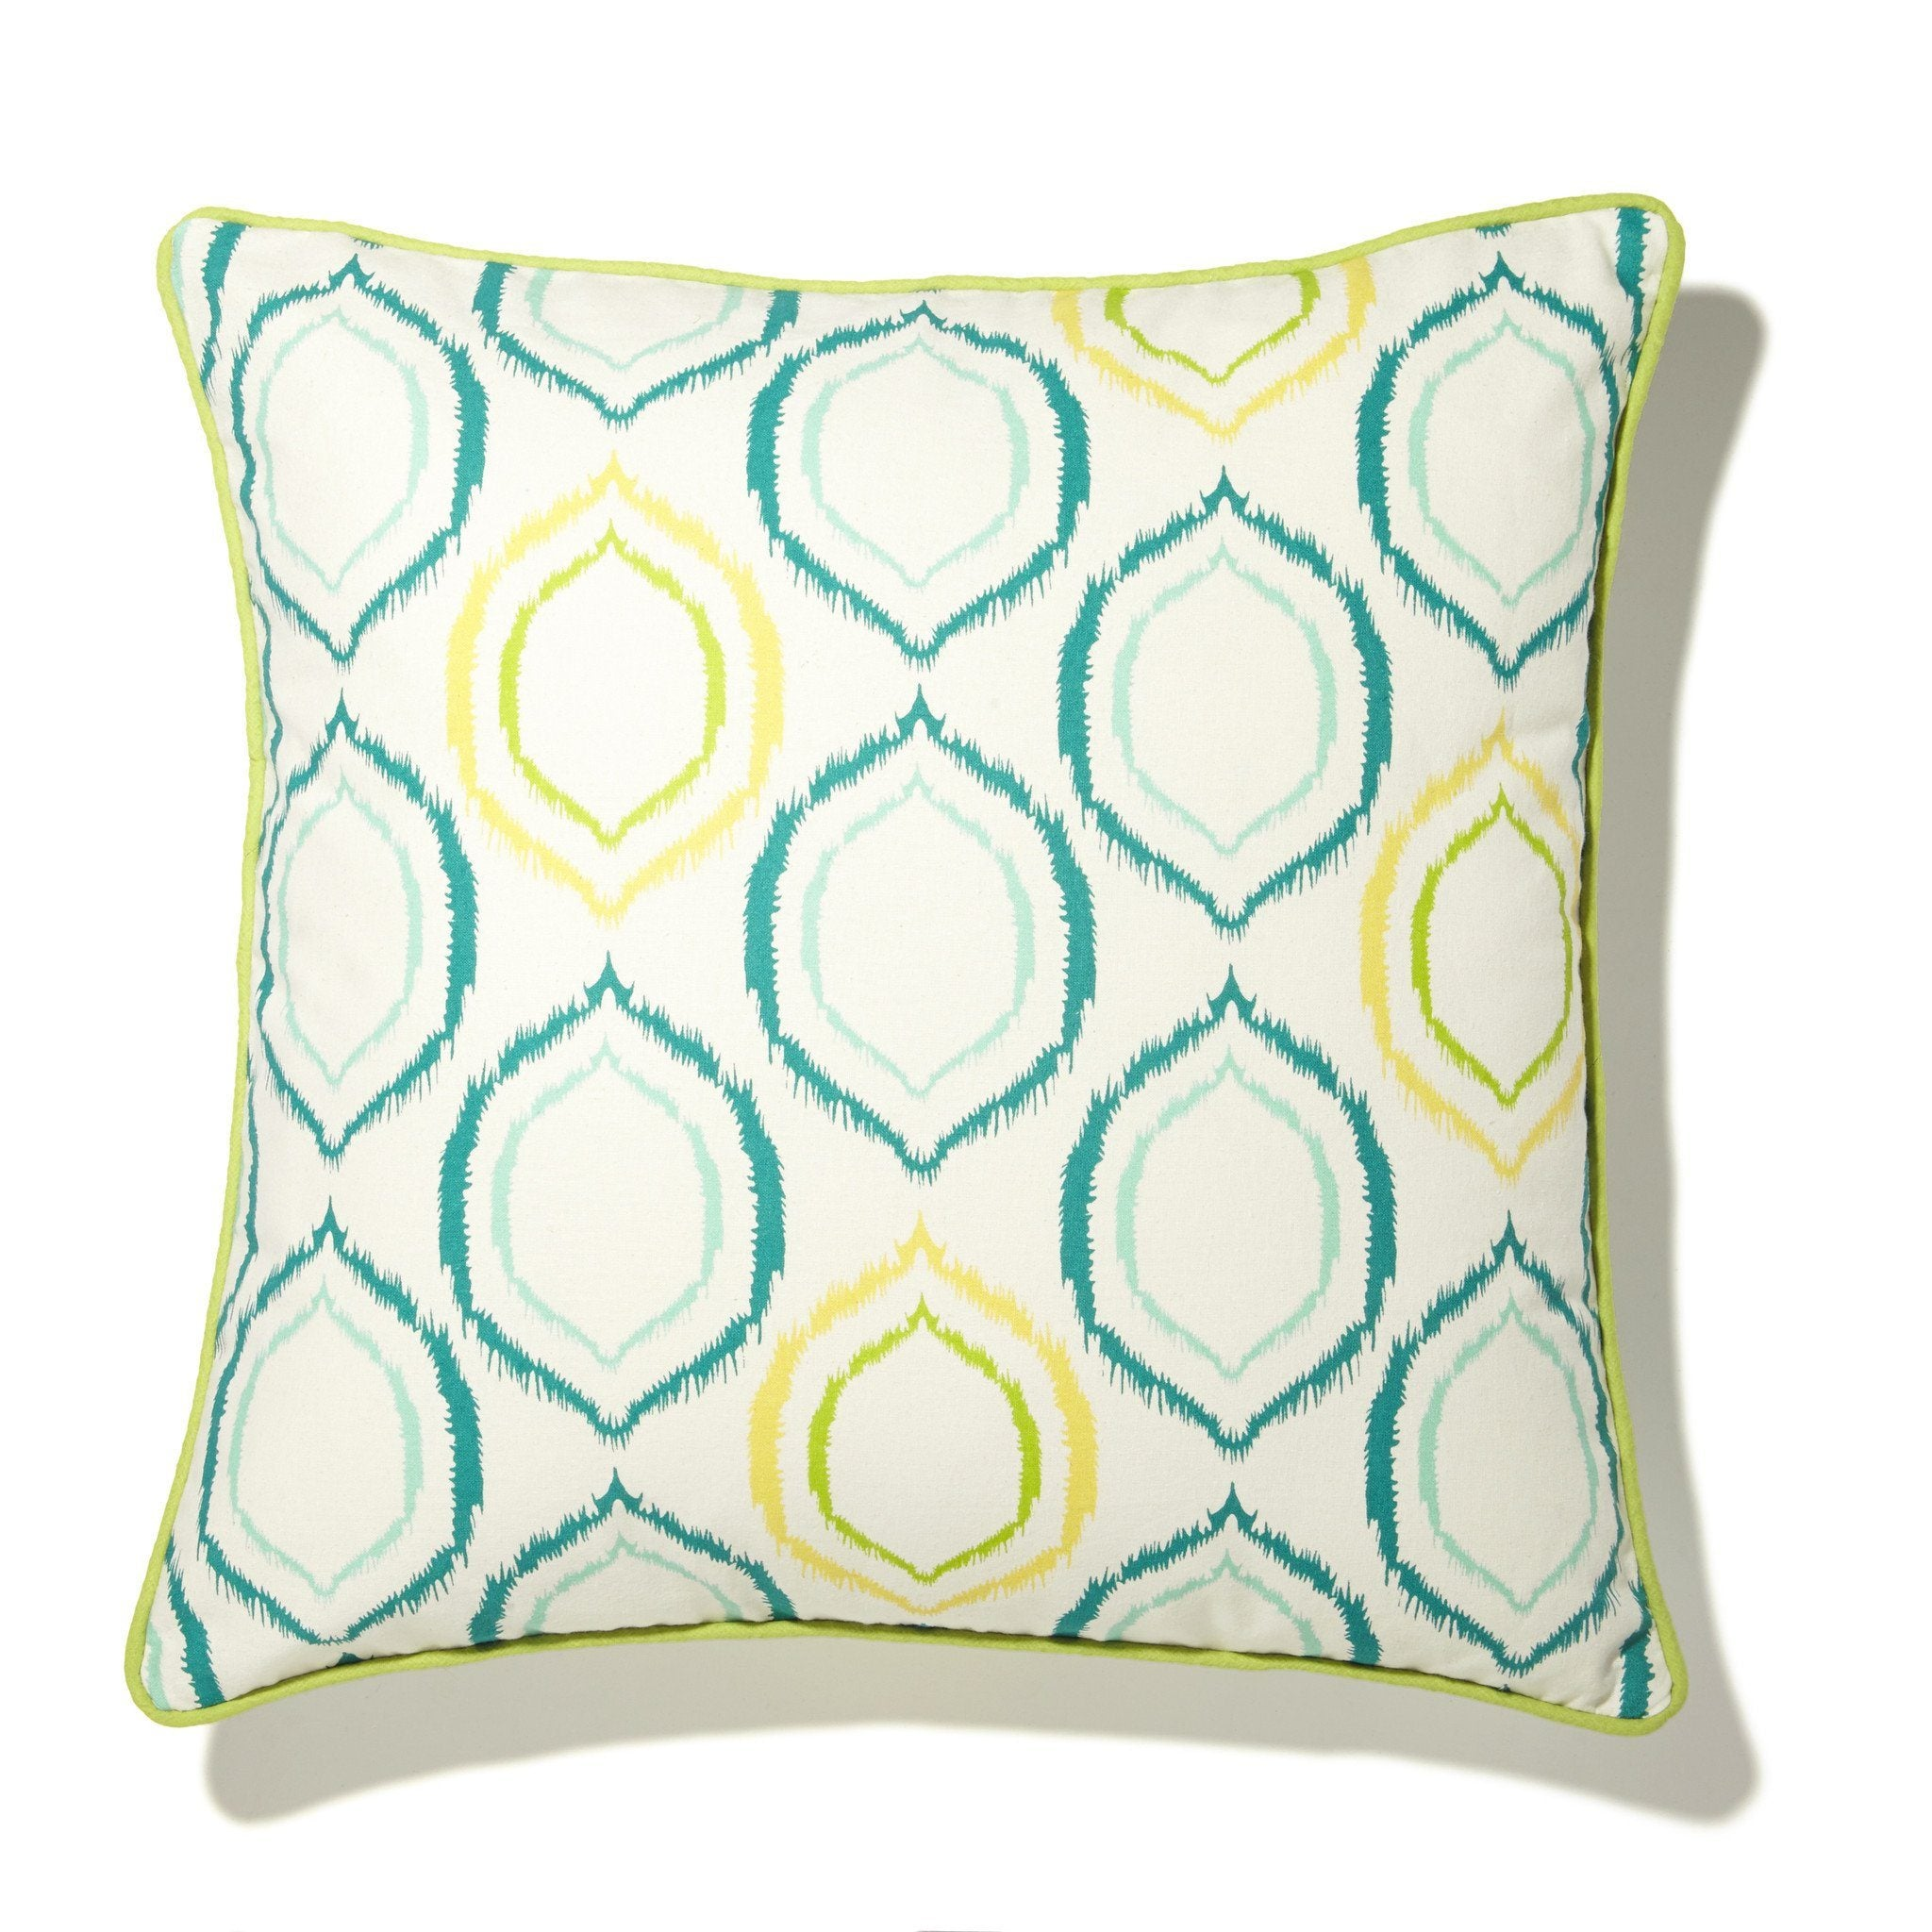 Ories Throw Pillow - Cushions - Stitches and Tweed - Naiise